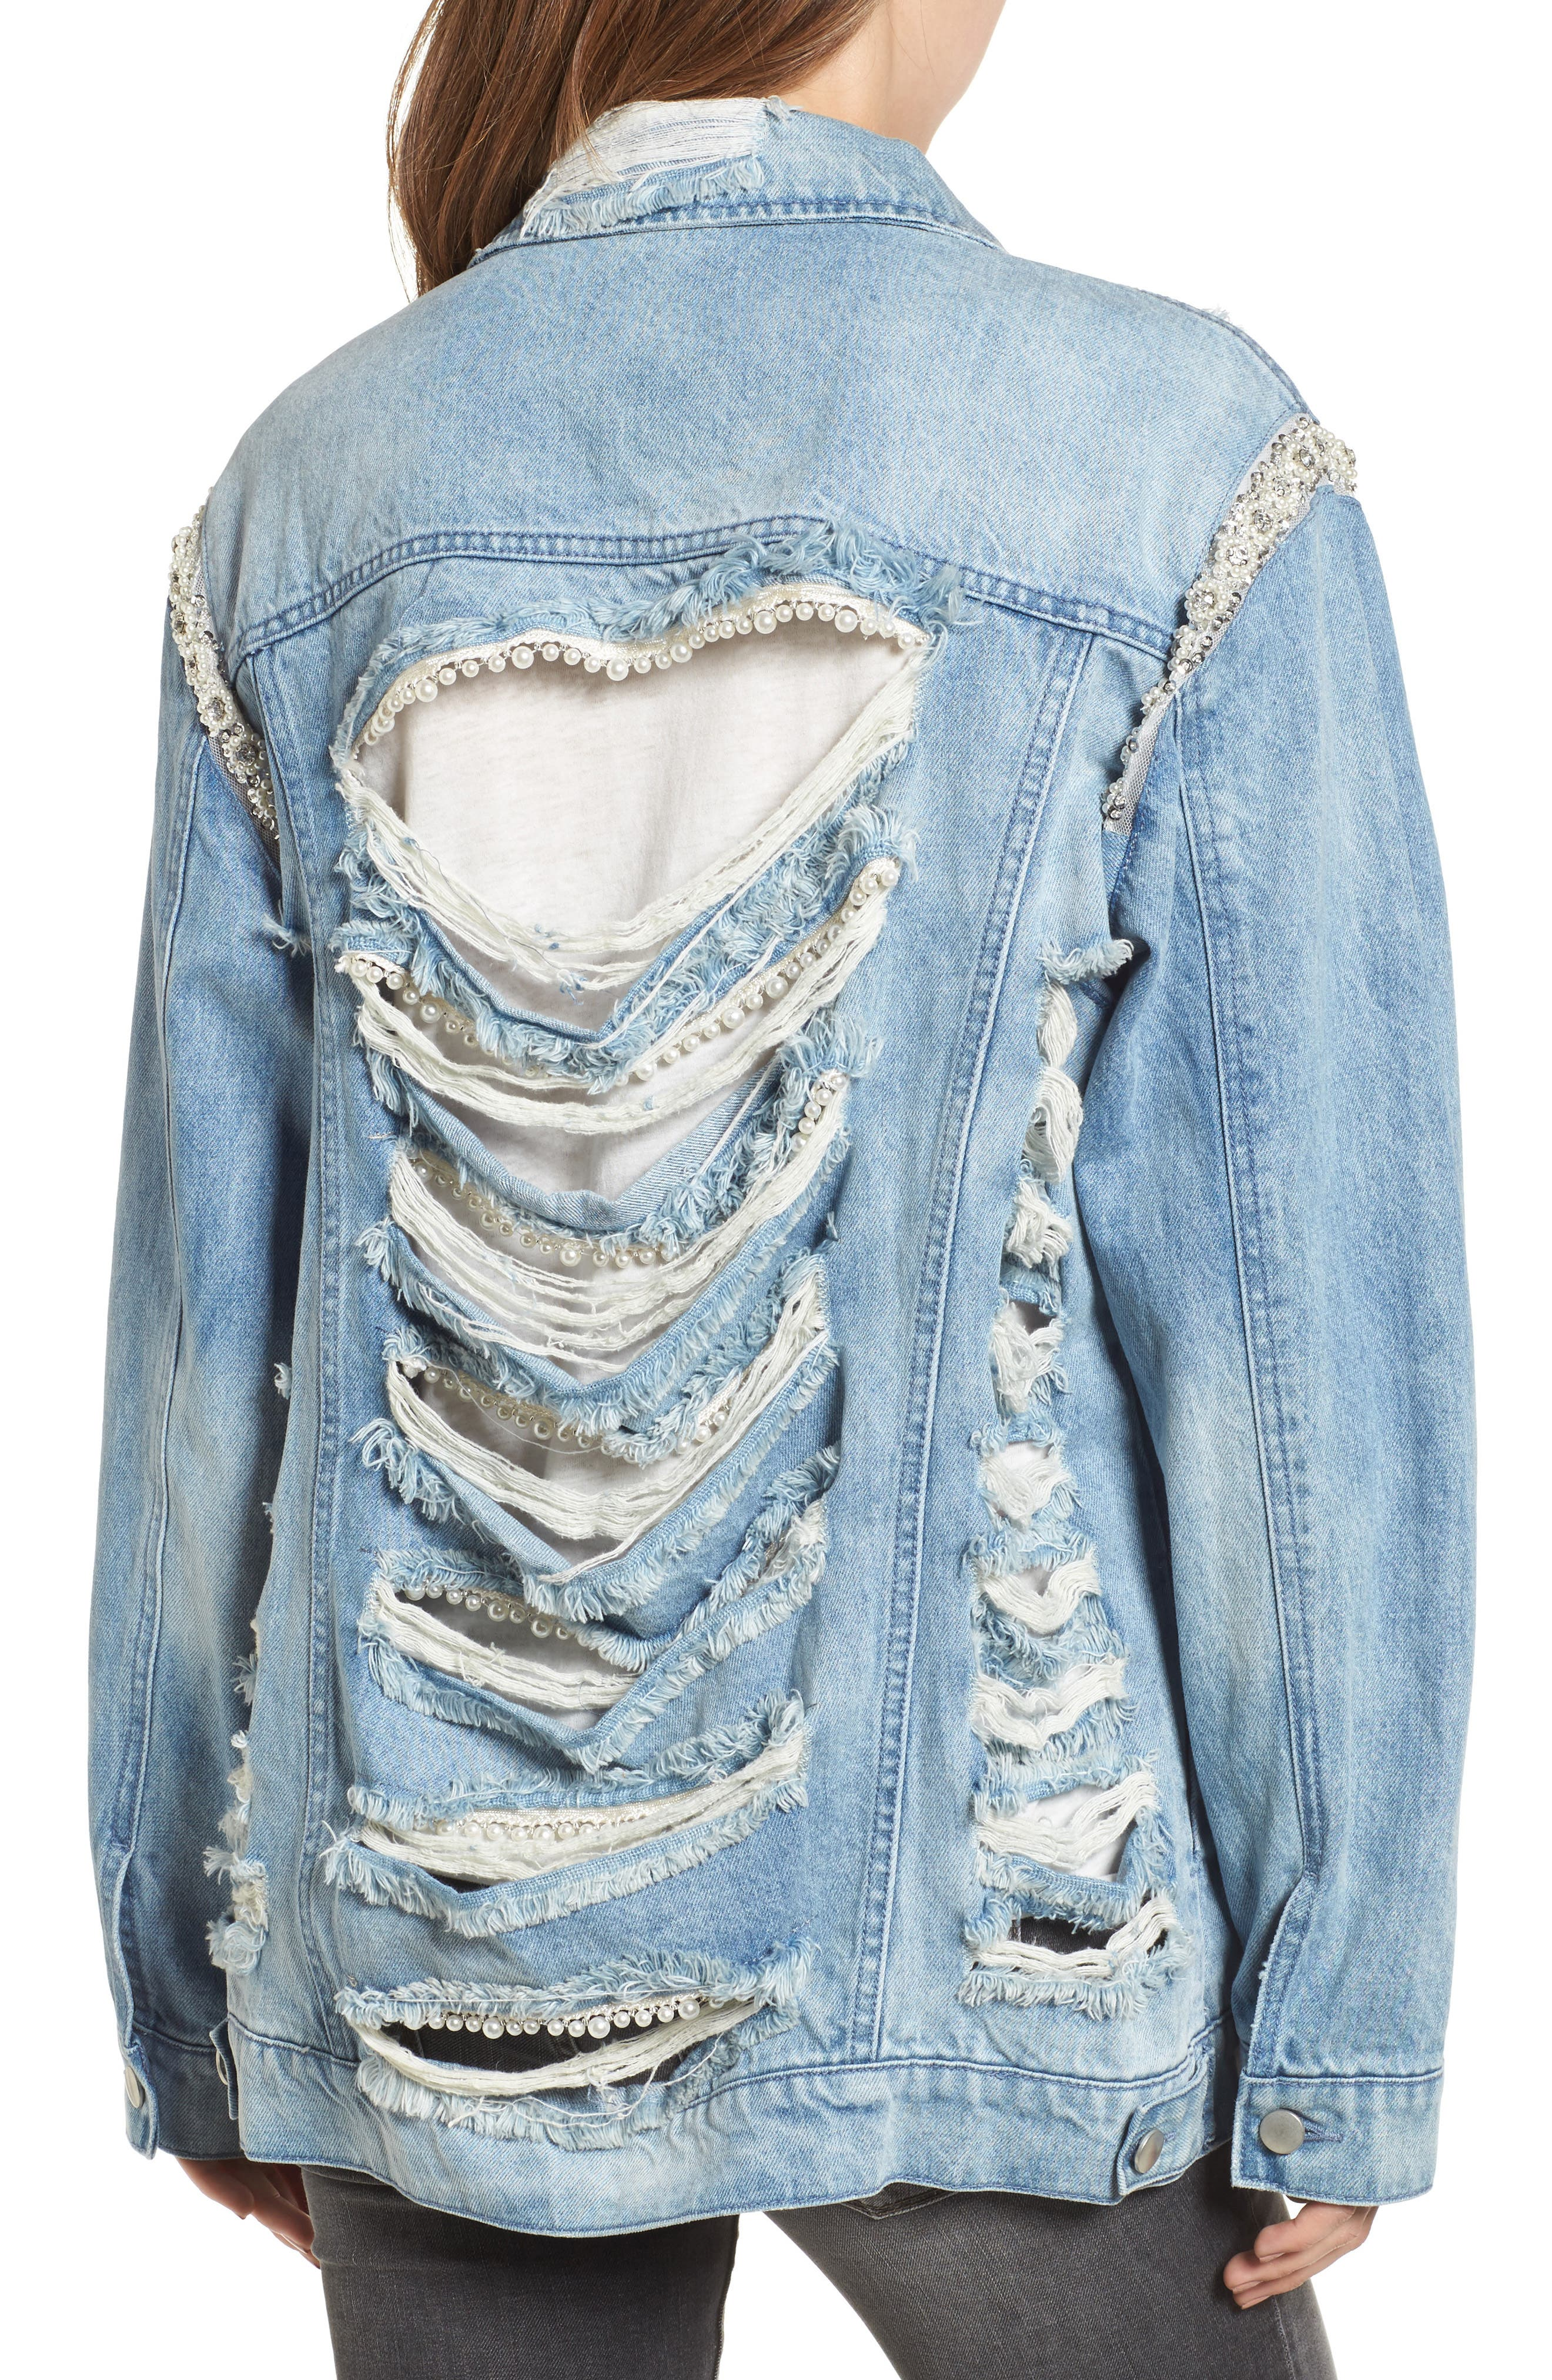 Embellished Ripped Denim Jacket,                         Main,                         color, Blue W/ Pearls & Diamonds